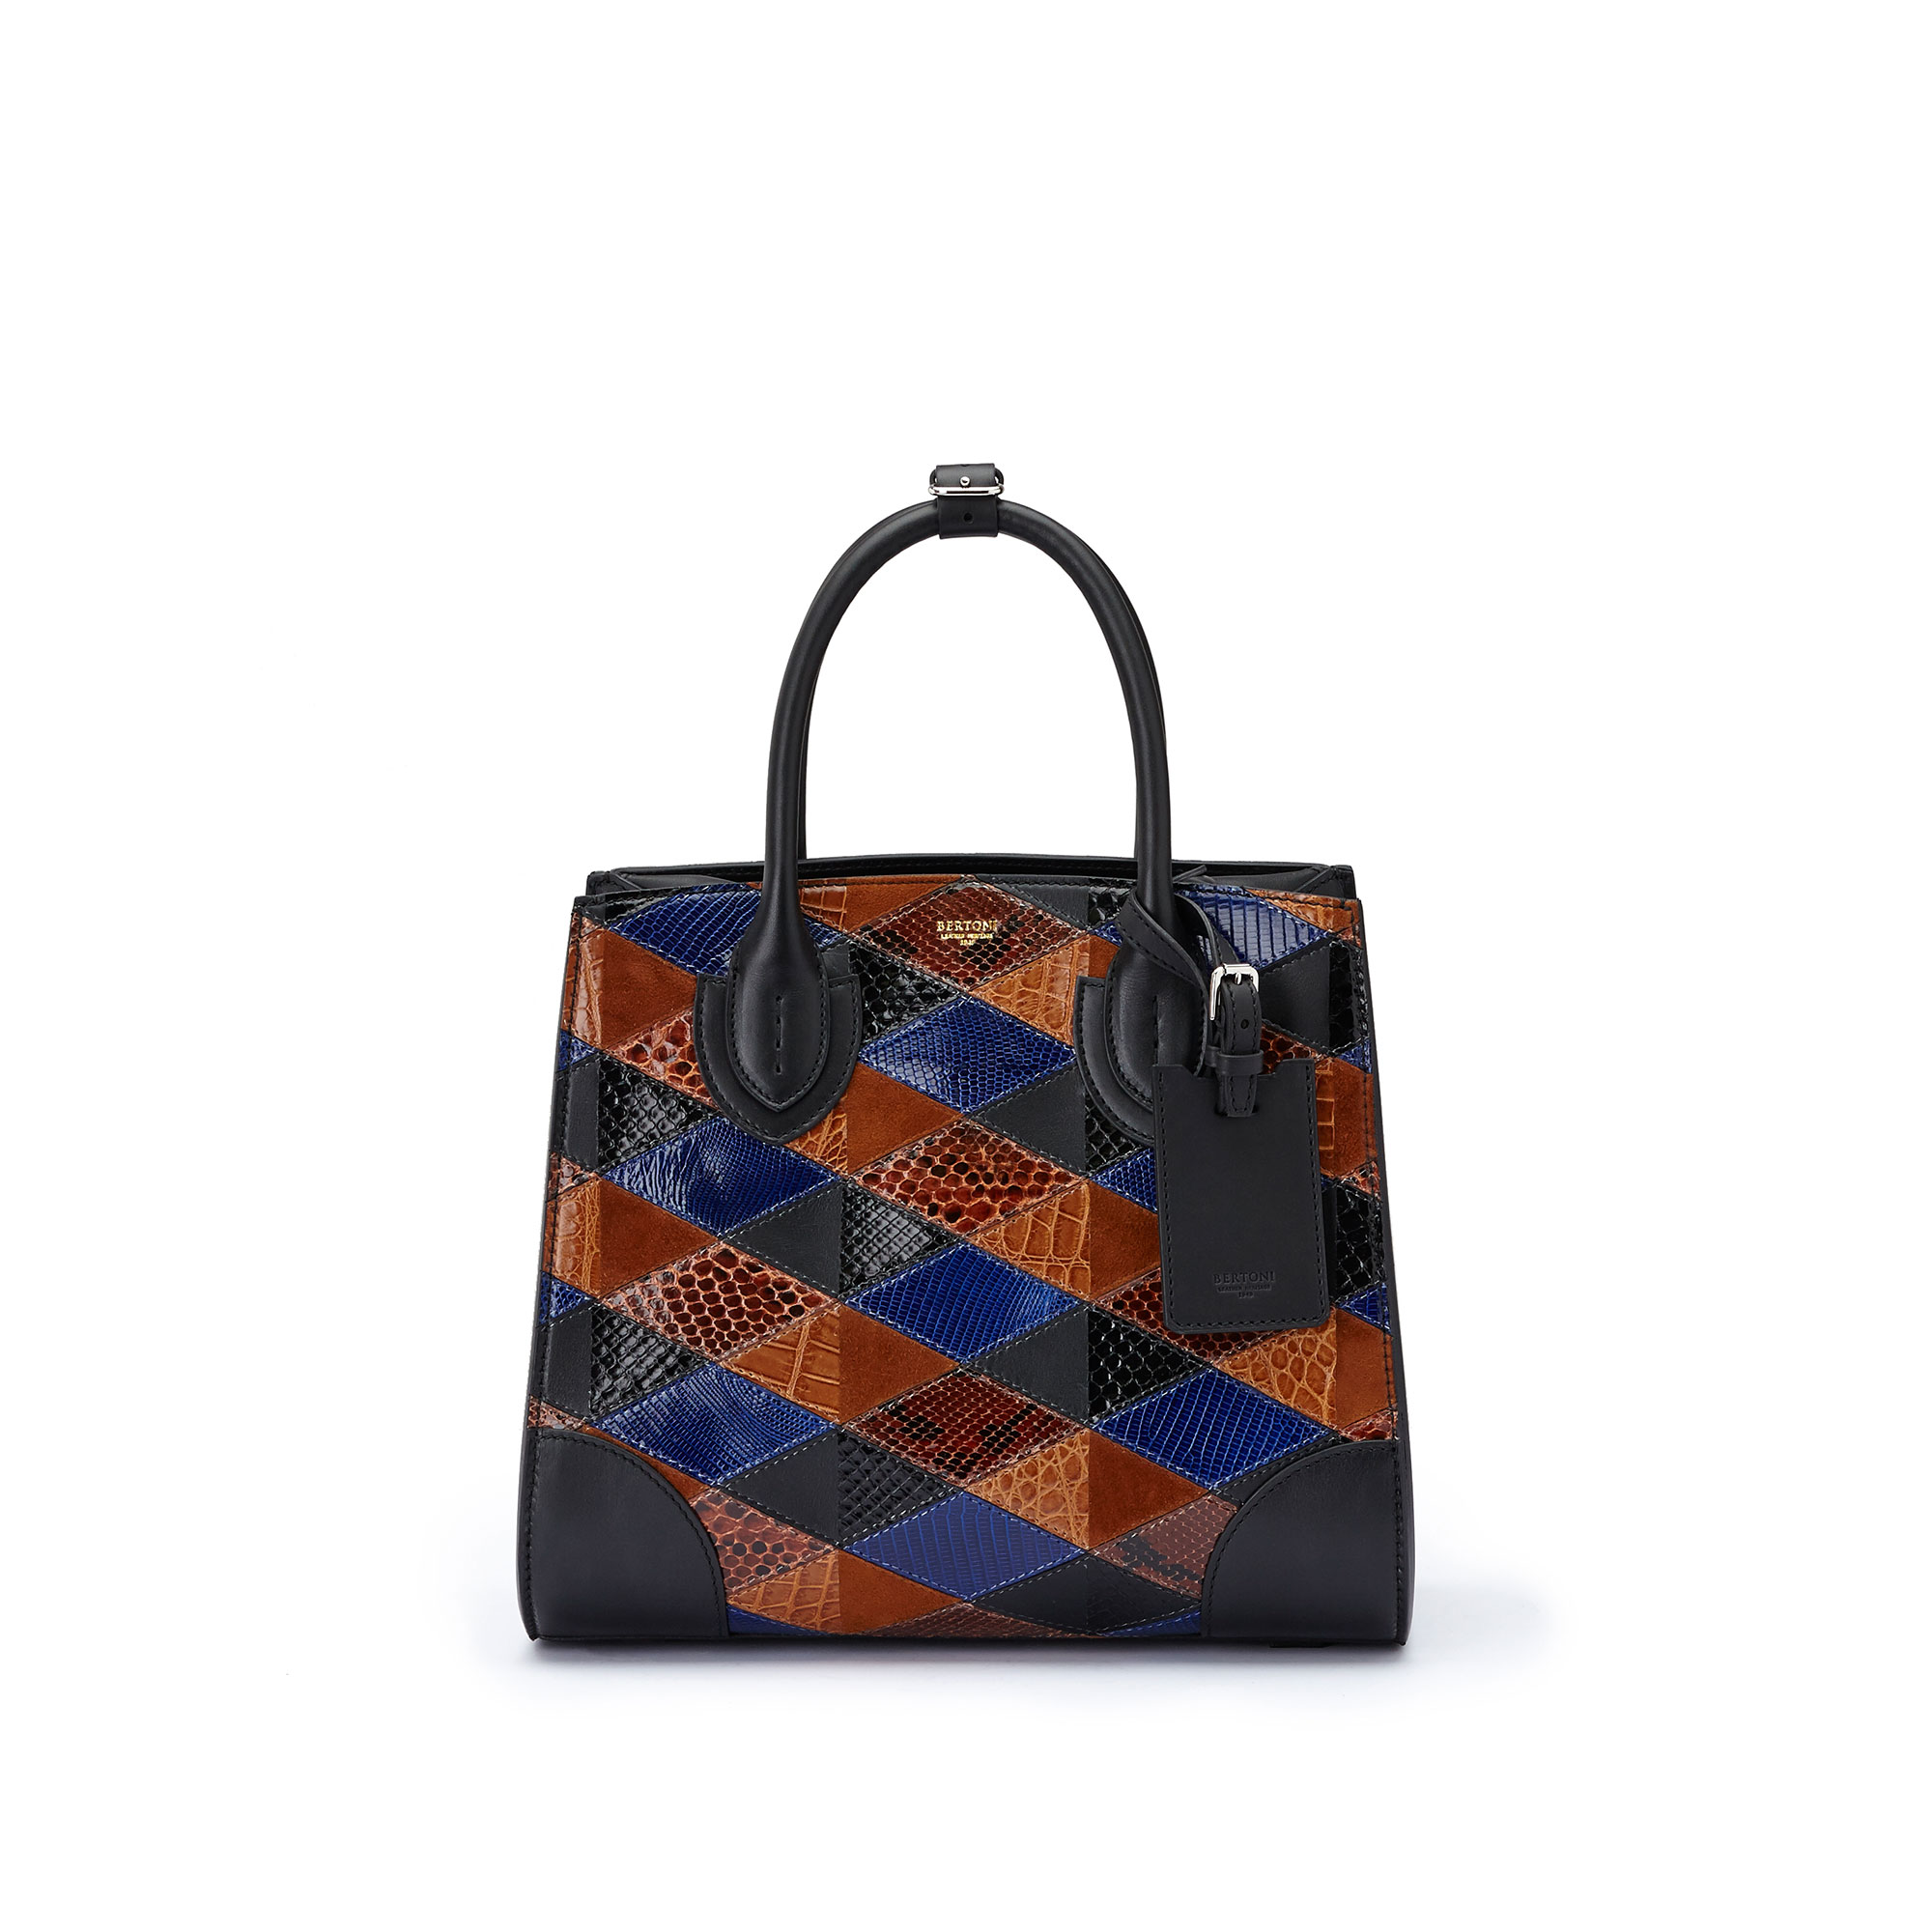 The navy, brown and black french calf, alligator, lizard and python Darcy medium bag by Bertoni 1949 02